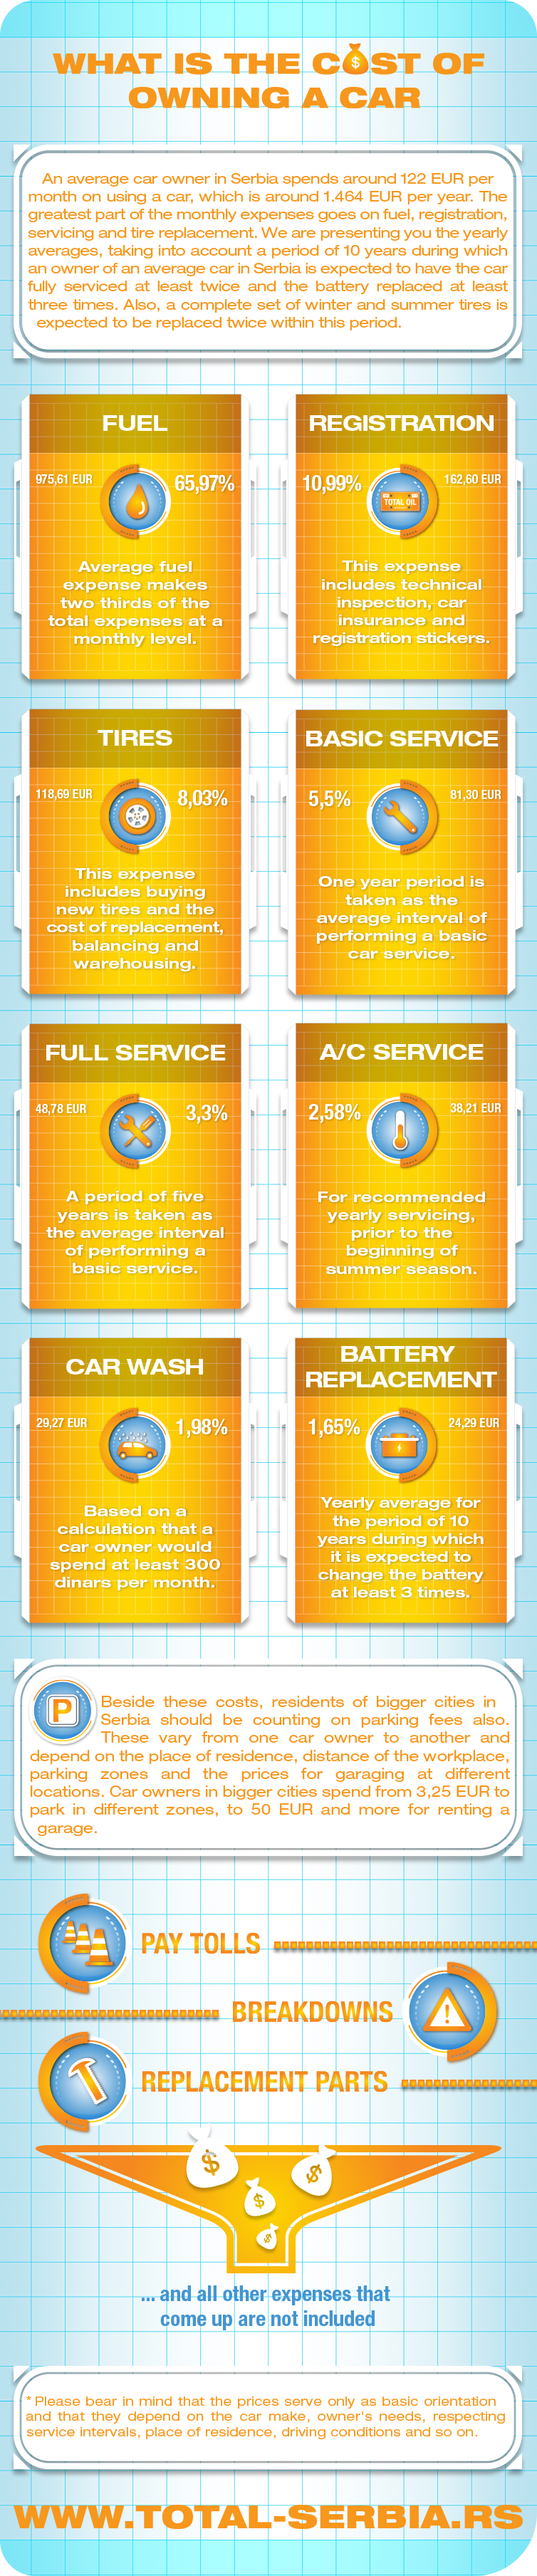 What is the cost of owning a car